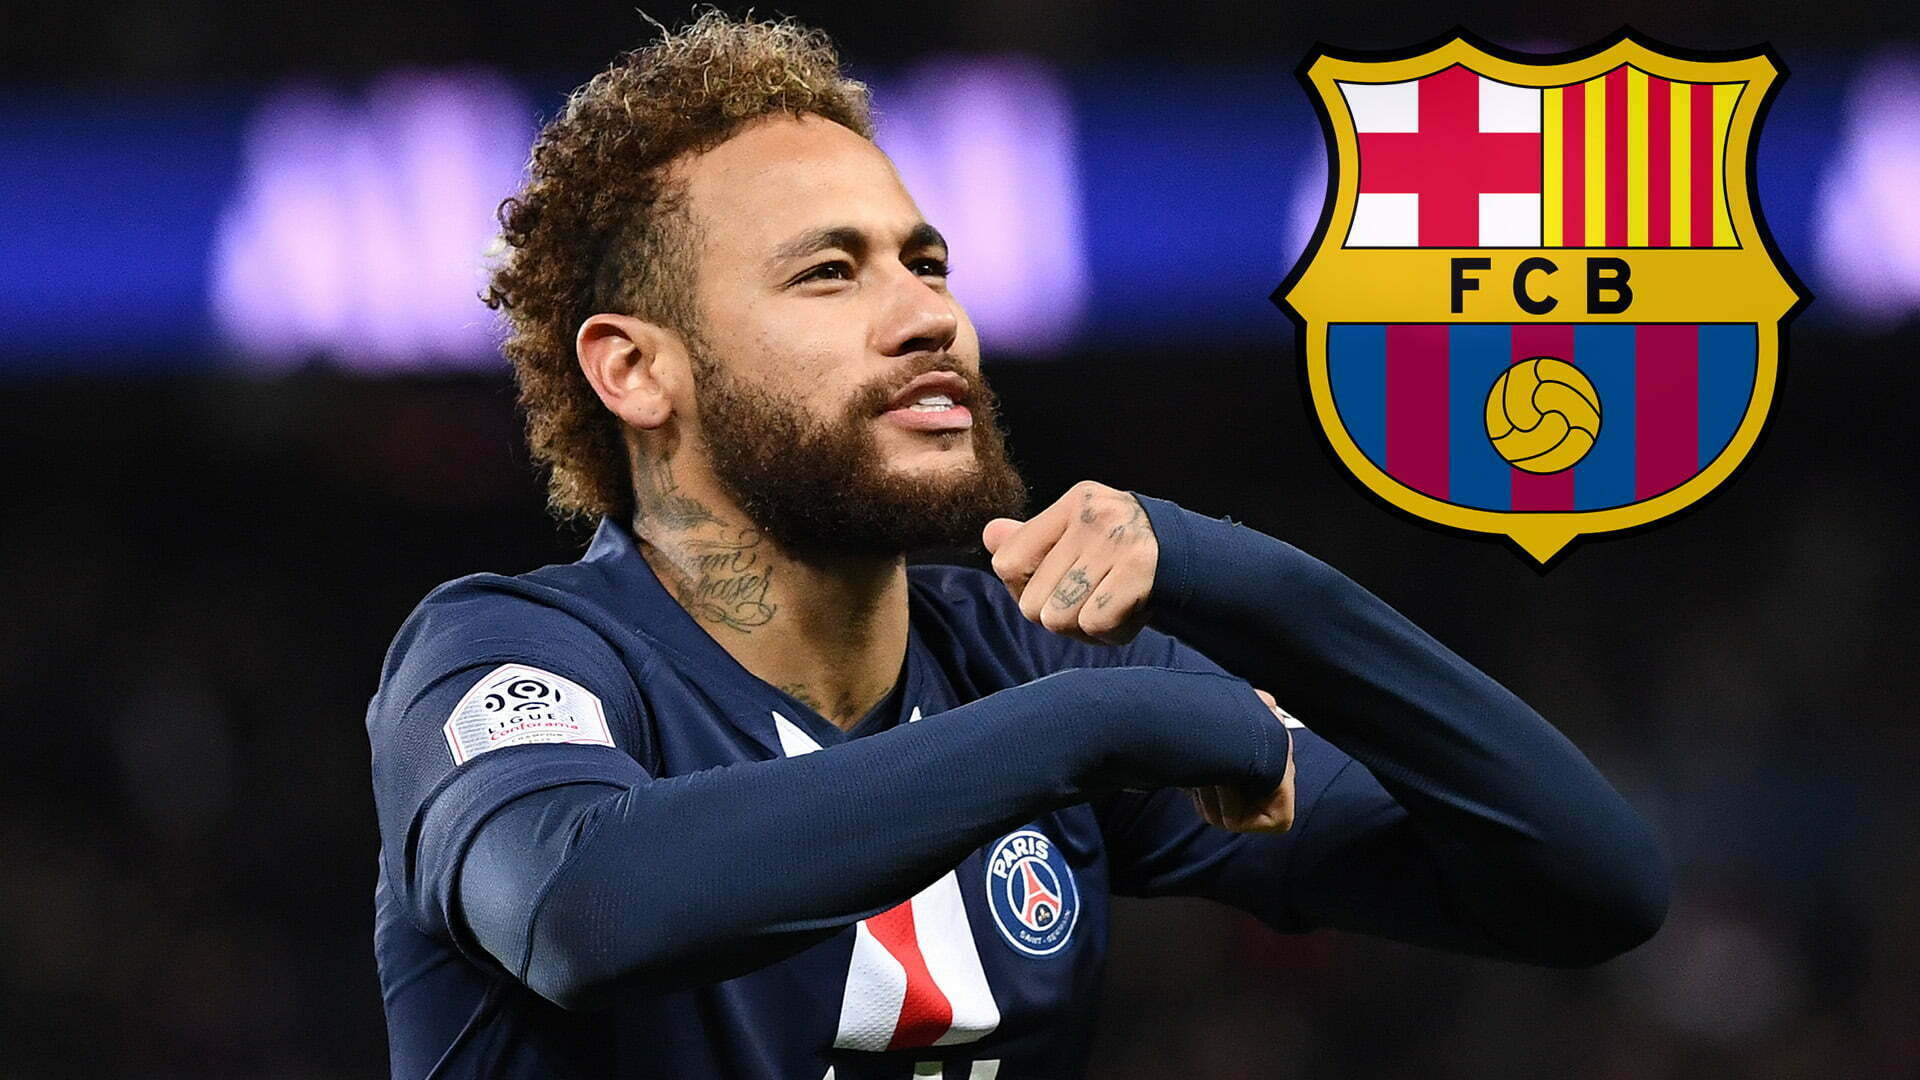 Will Neymar be on the pitch during the PSG vs Barcelona match 1